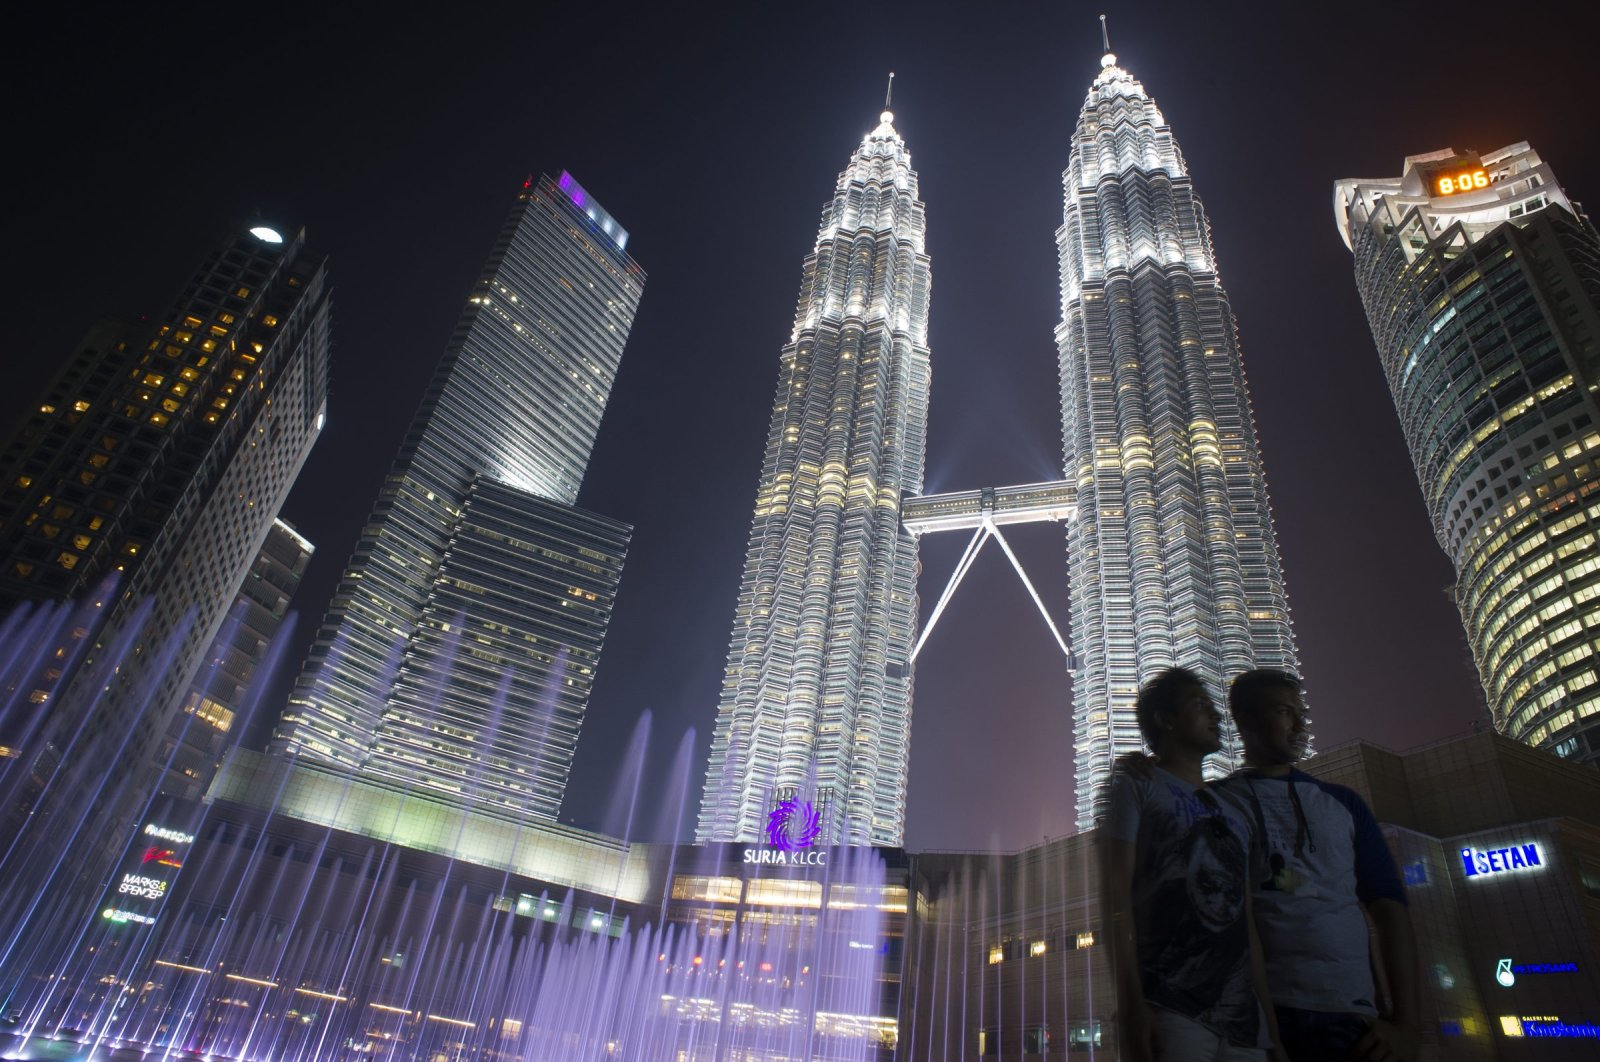 Tourists have their photograph taken in front of the Petronas Twin Towers in Kuala Lumpur, Malaysia, March 10, 2015. (AP Photo)